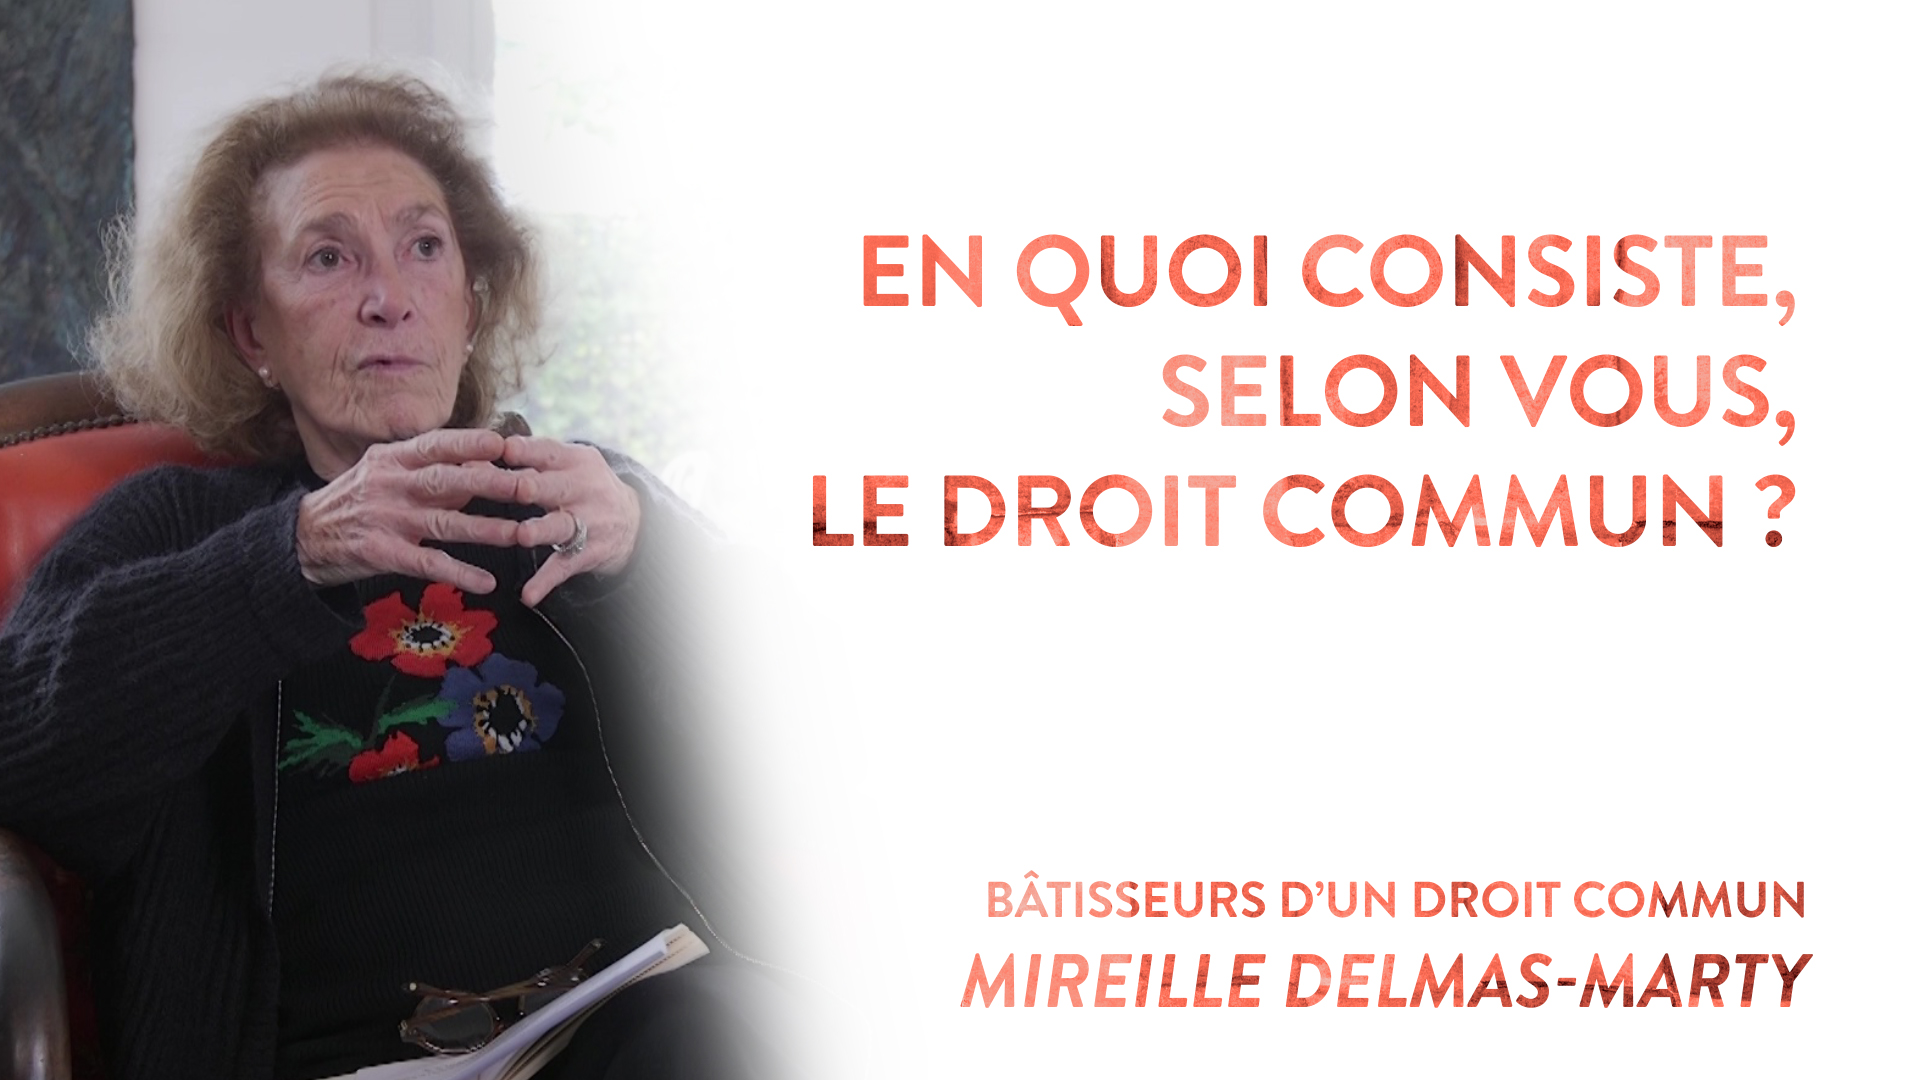 Mireille Delmas-Marty question 3